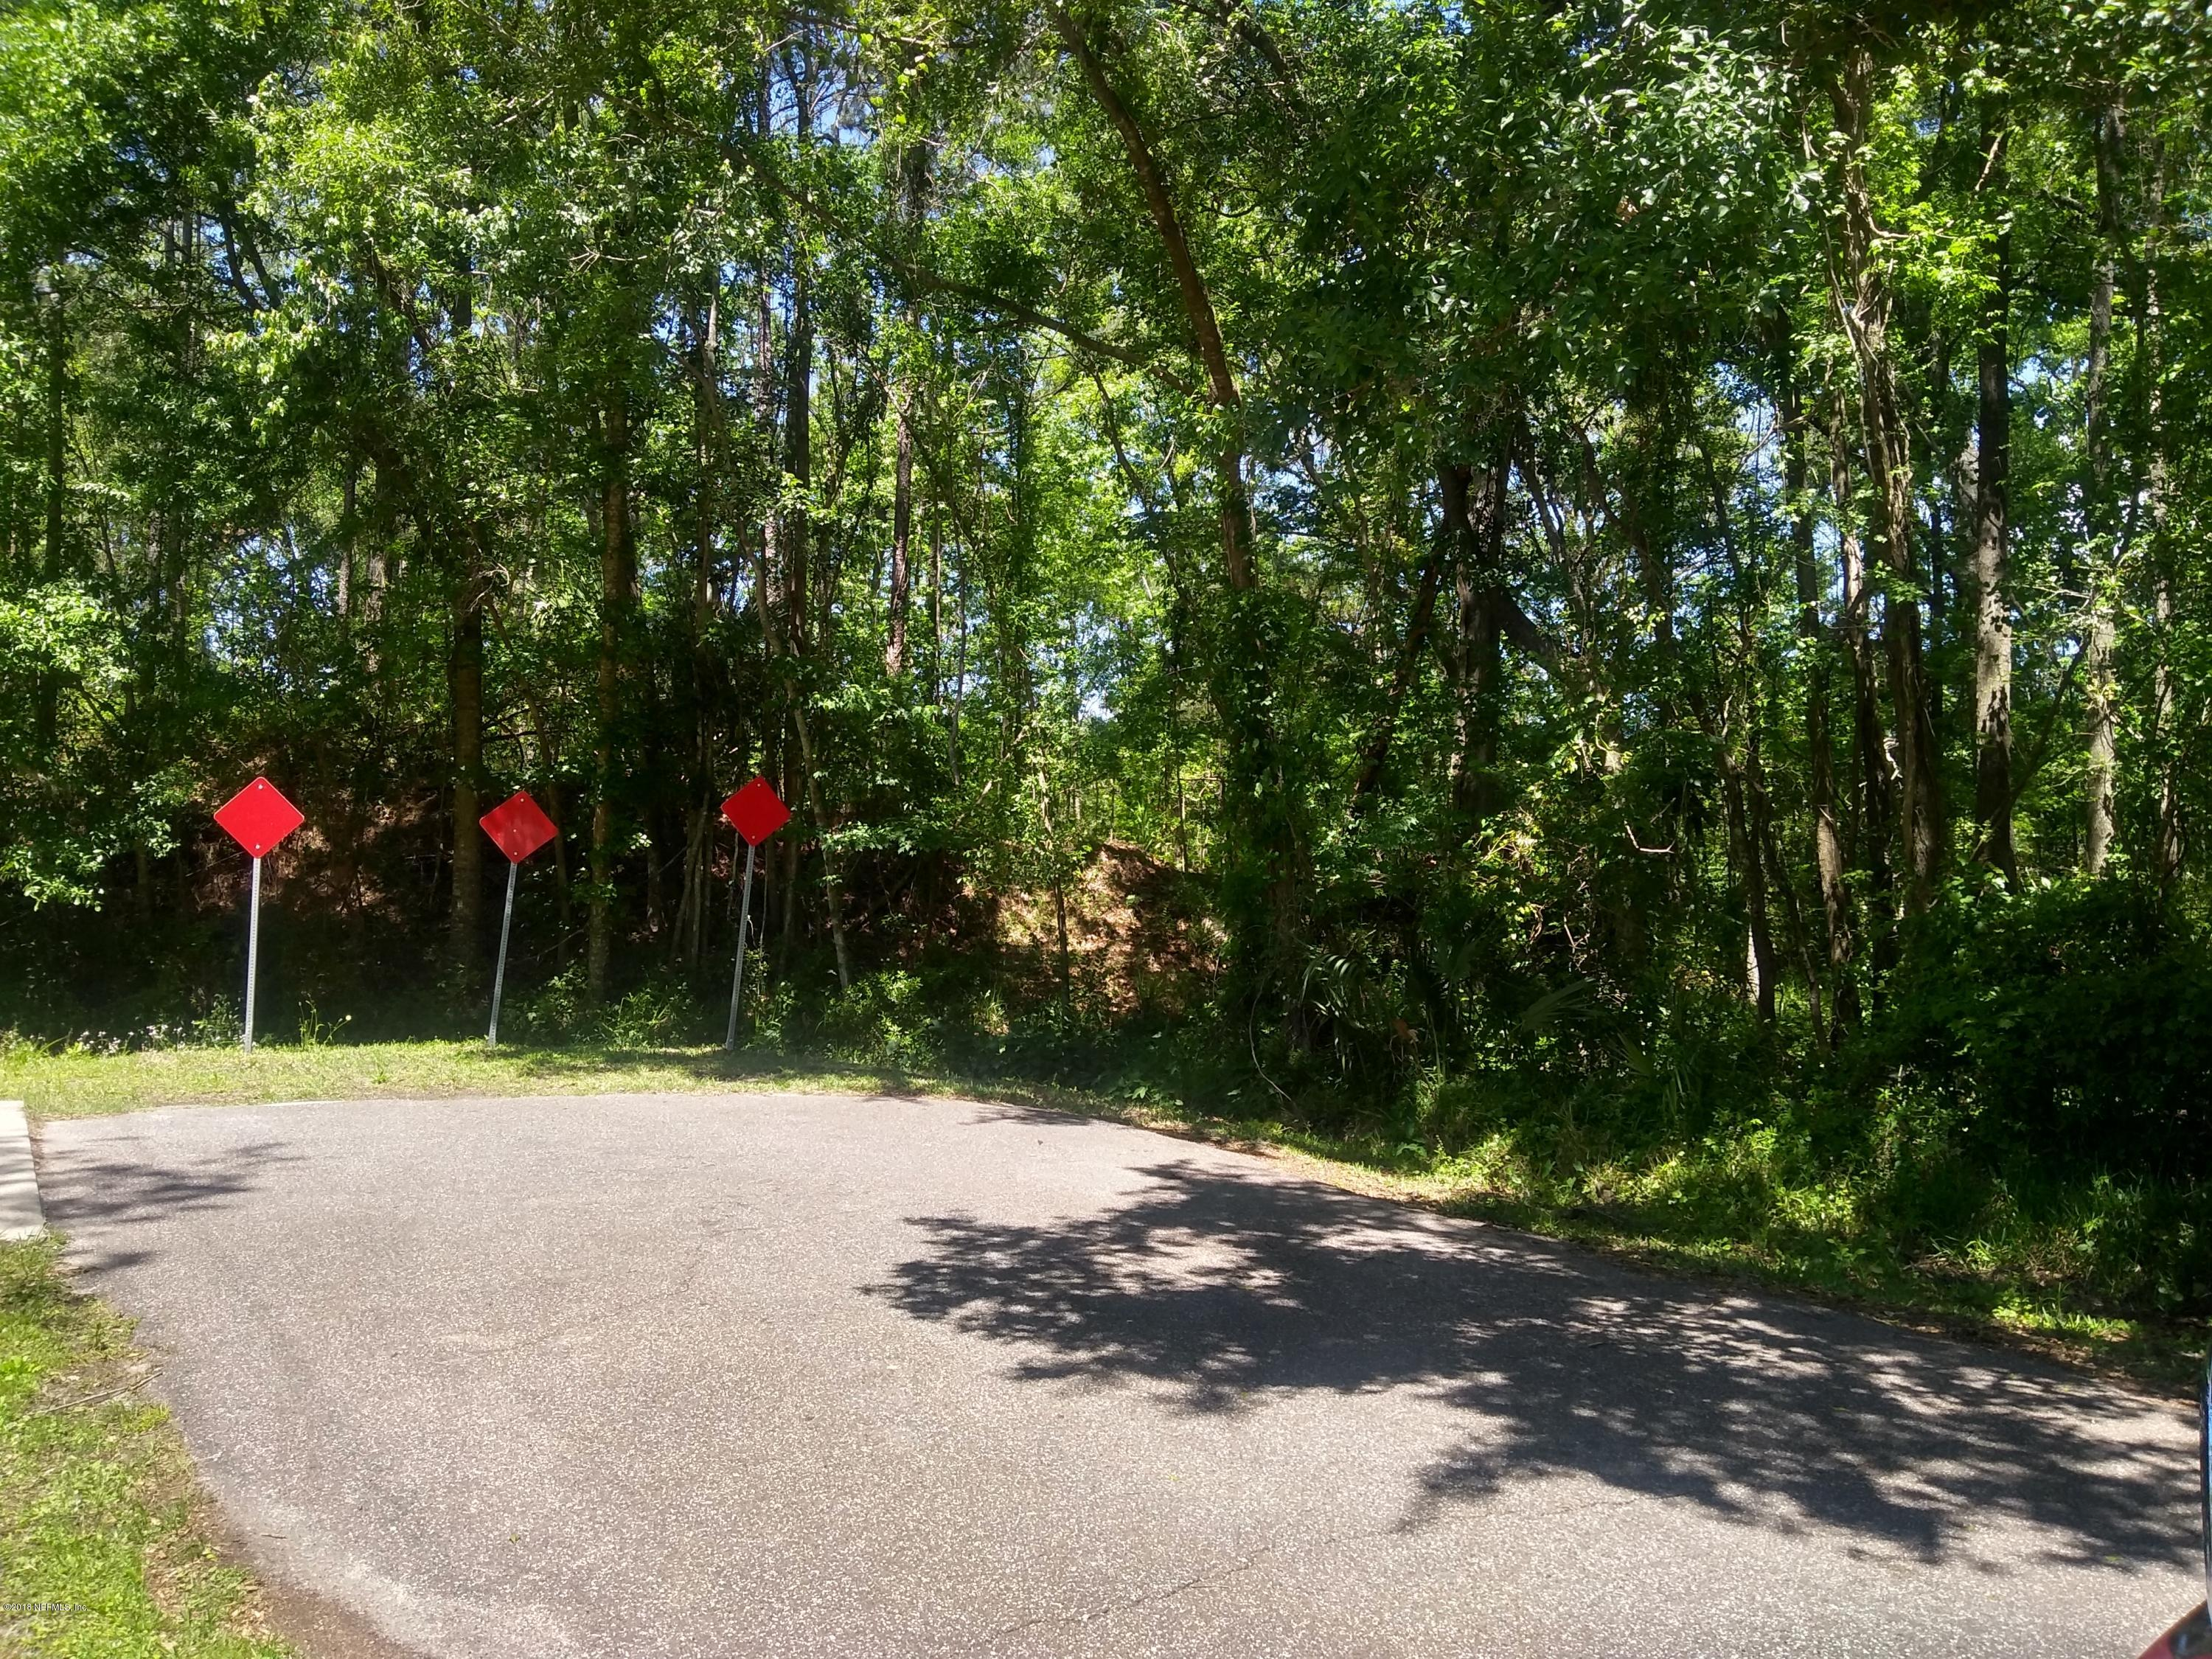 0 GRANT, JACKSONVILLE, FLORIDA 32219, ,Vacant land,For sale,GRANT,963108